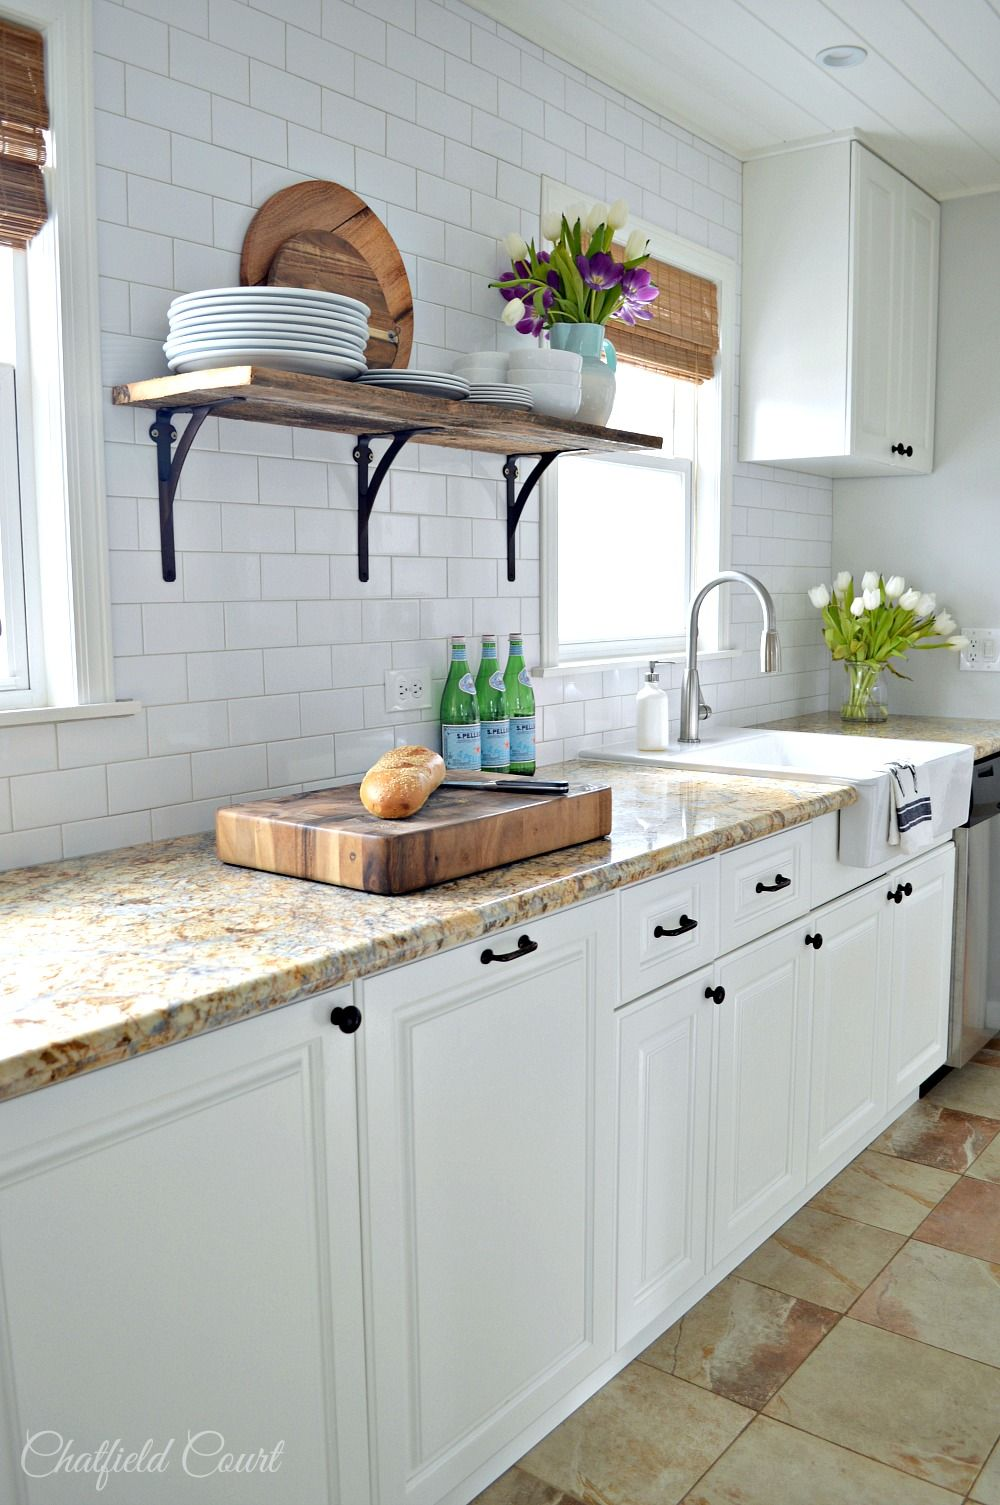 How we did a total diy kitchen remodel for under 3000 chatfieldcourt com inspirationspotlight